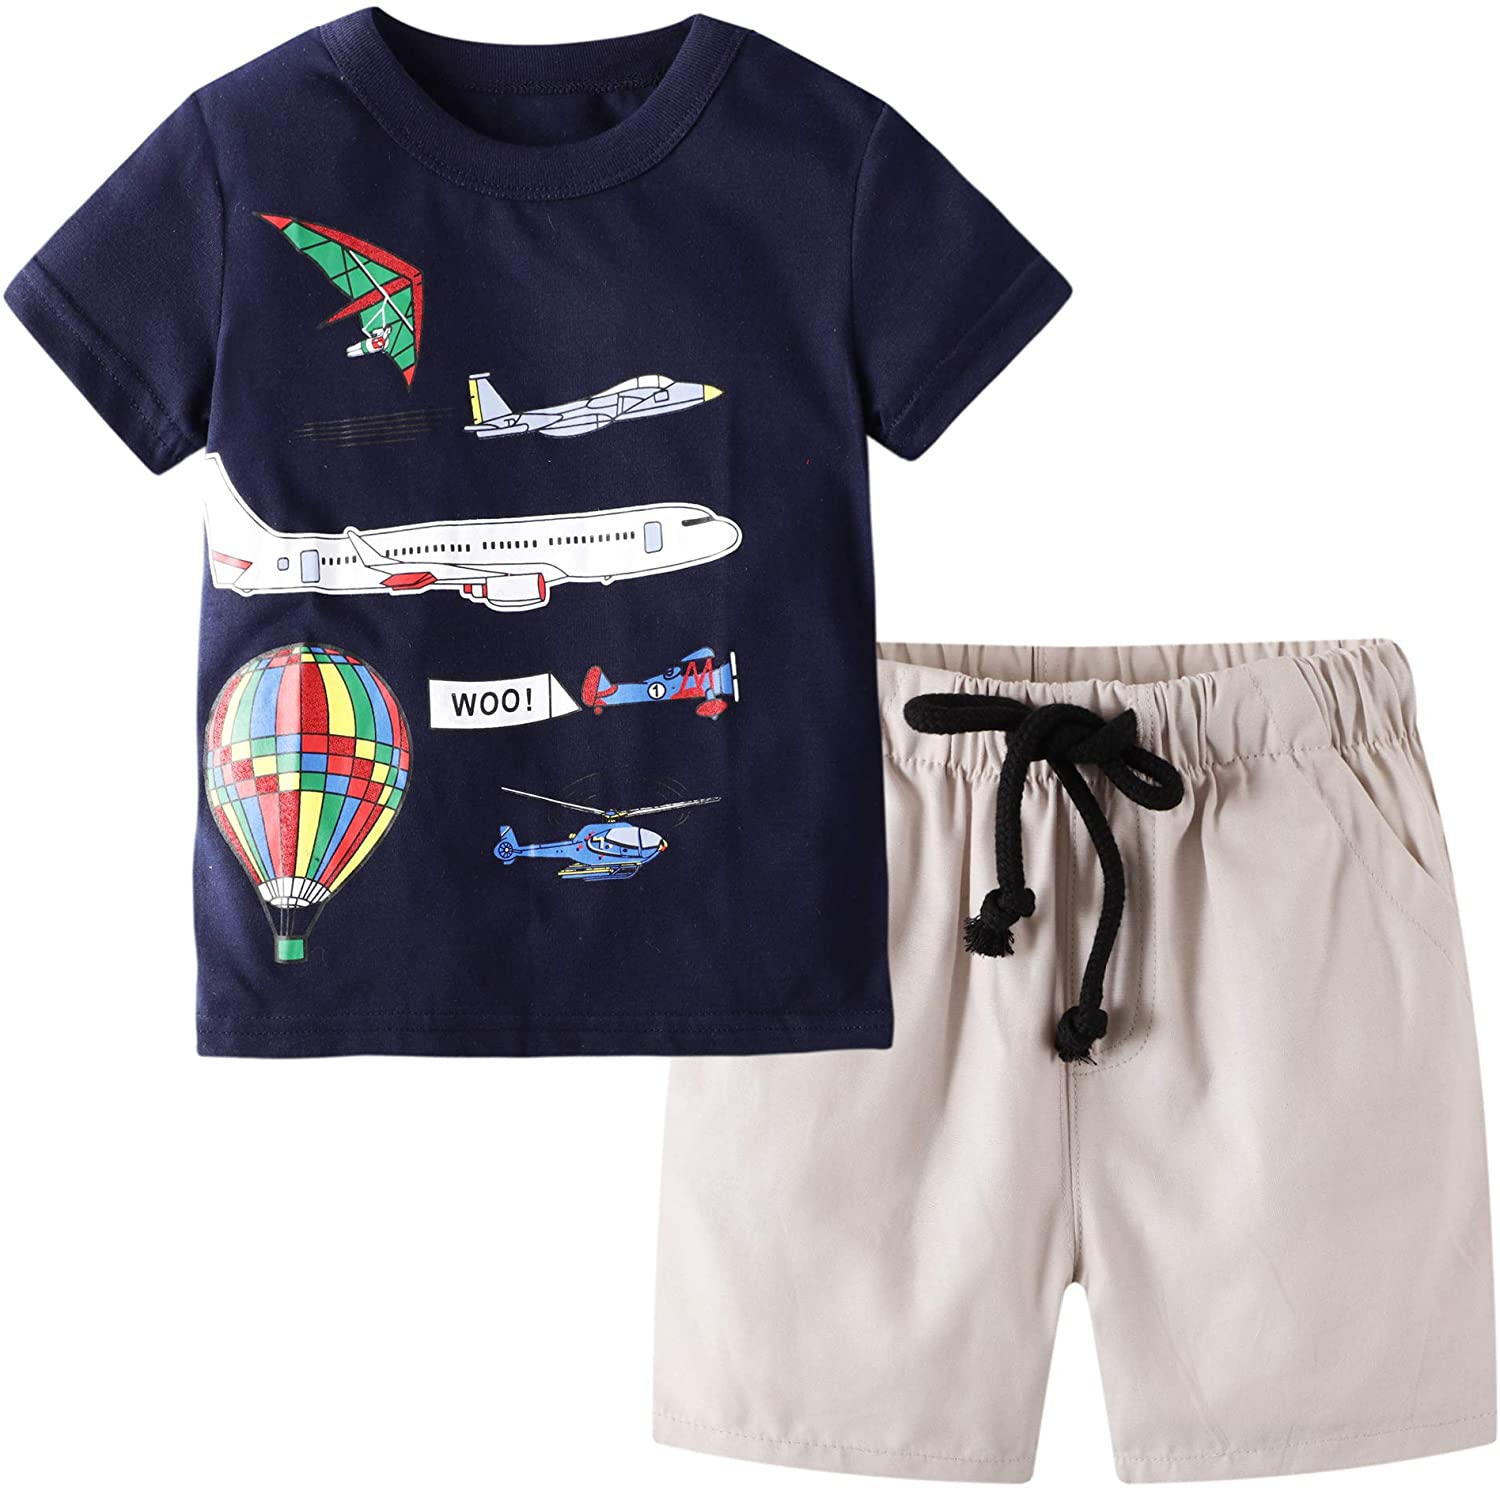 BIBNice Toddler Max 68% OFF Boy Direct stock discount Clothes Kids Short Shirt Outfits Summer Sets